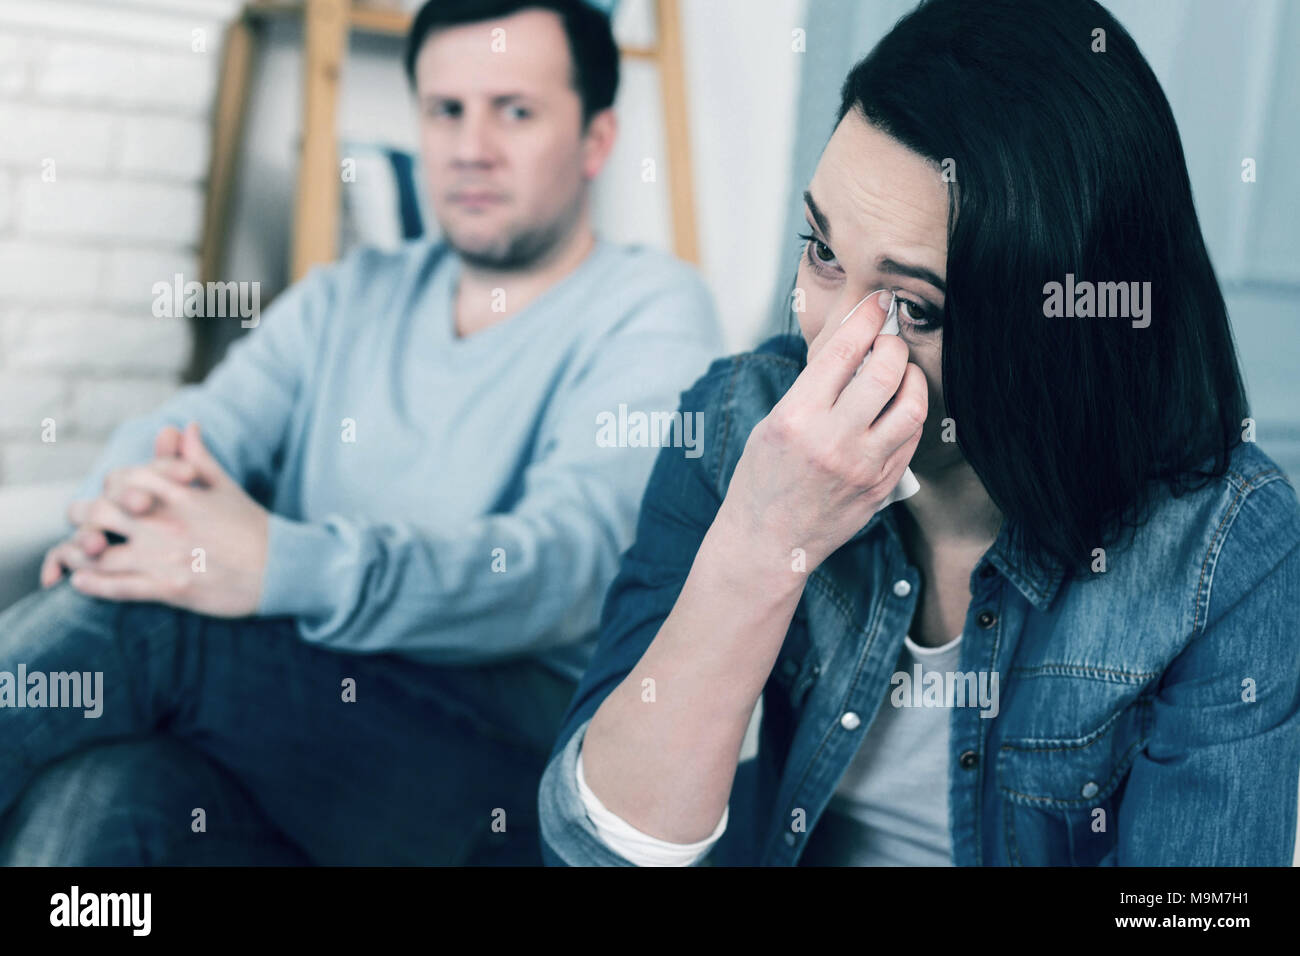 Unhappy woman wiping her tears - Stock Image